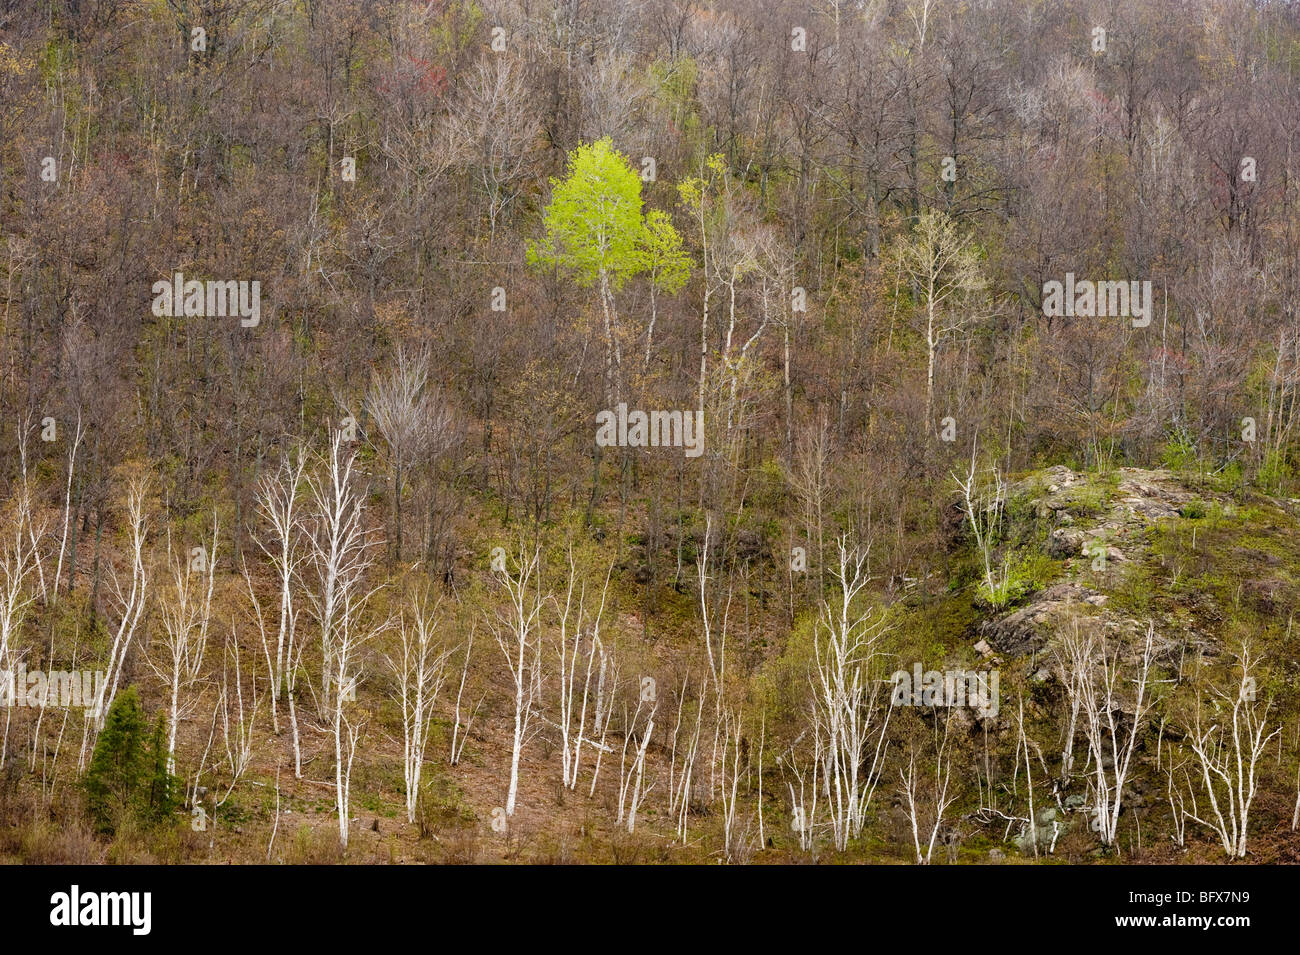 Aspens and birch trees in spring valley from high viewpoint, Greater Sudbury, Ontario, Canada - Stock Image